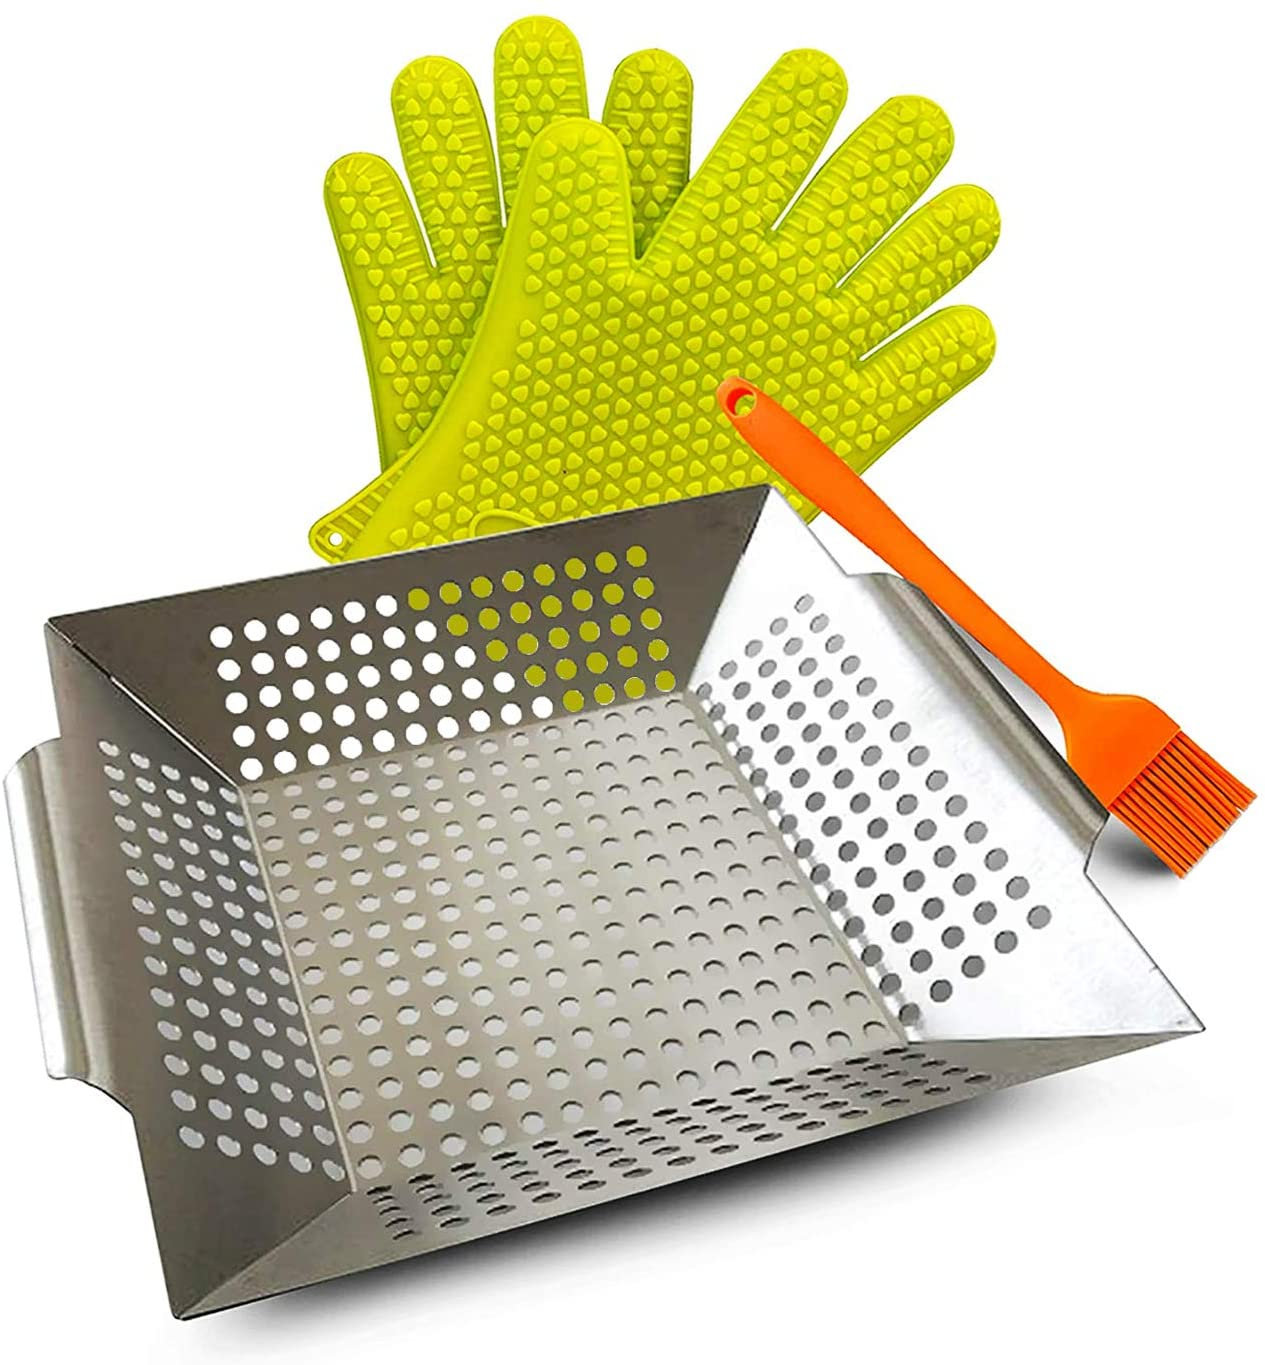 Grill Basket, BBQ Grill Basket Set of 3, Silicone Brush-Gloves, Stainless Steel, Large Grill Basket for More Vegetables, Fish, Meat, Shrimp, Chops and Much Other Food, Perfect BBQ Grill Basket.